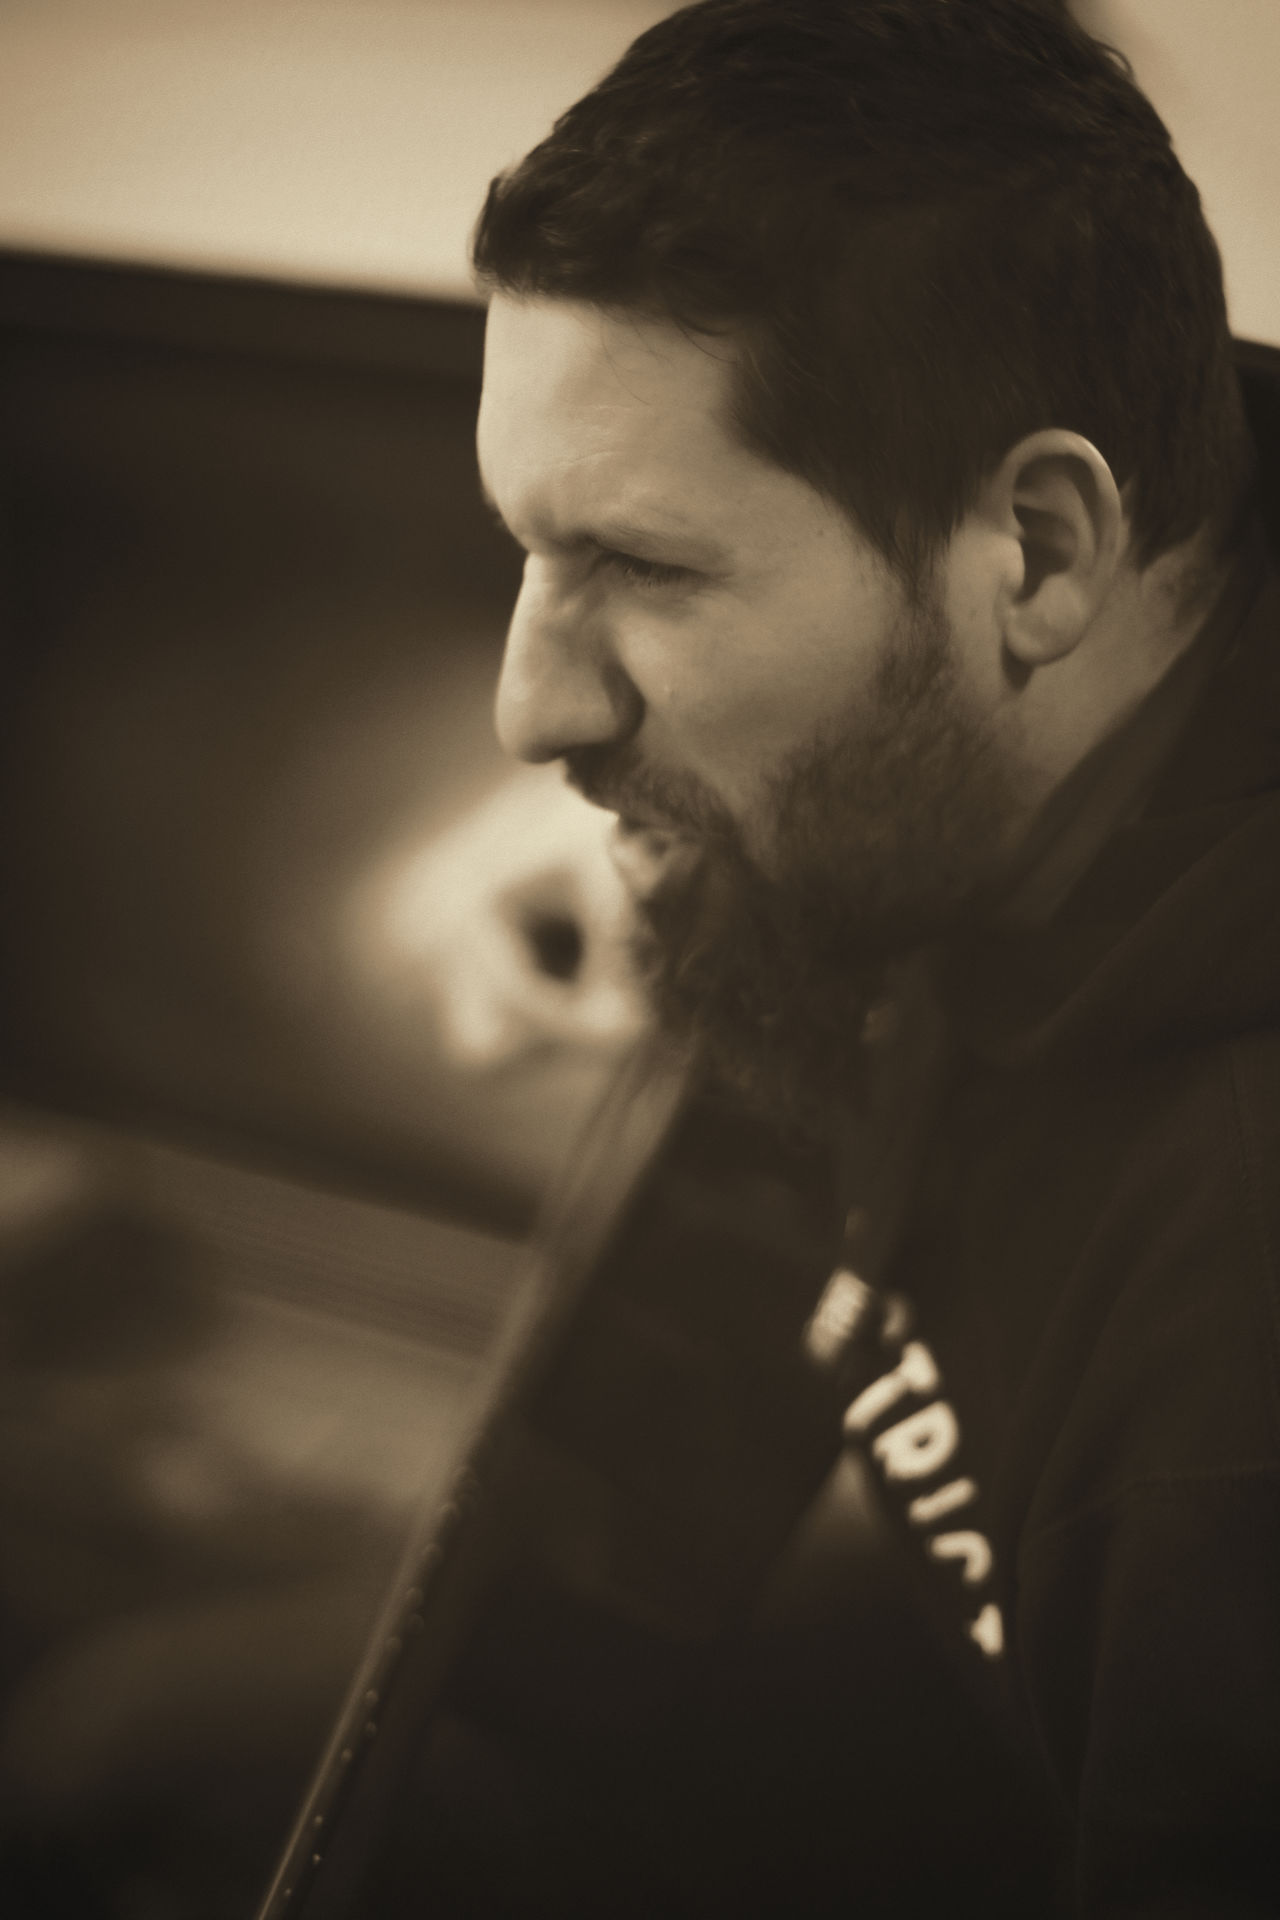 [Cosinon 55mm f/1.2 MC] Acoustic Guitar Beard Bearded Man Black And White Emotions Feeling Guitar Guitarist Headshot Human Face Indoors  Lifestyles Music Music Brings Us Together Musician Person Play On The Guitar Rock Music Self-Expression TakeoverMusic